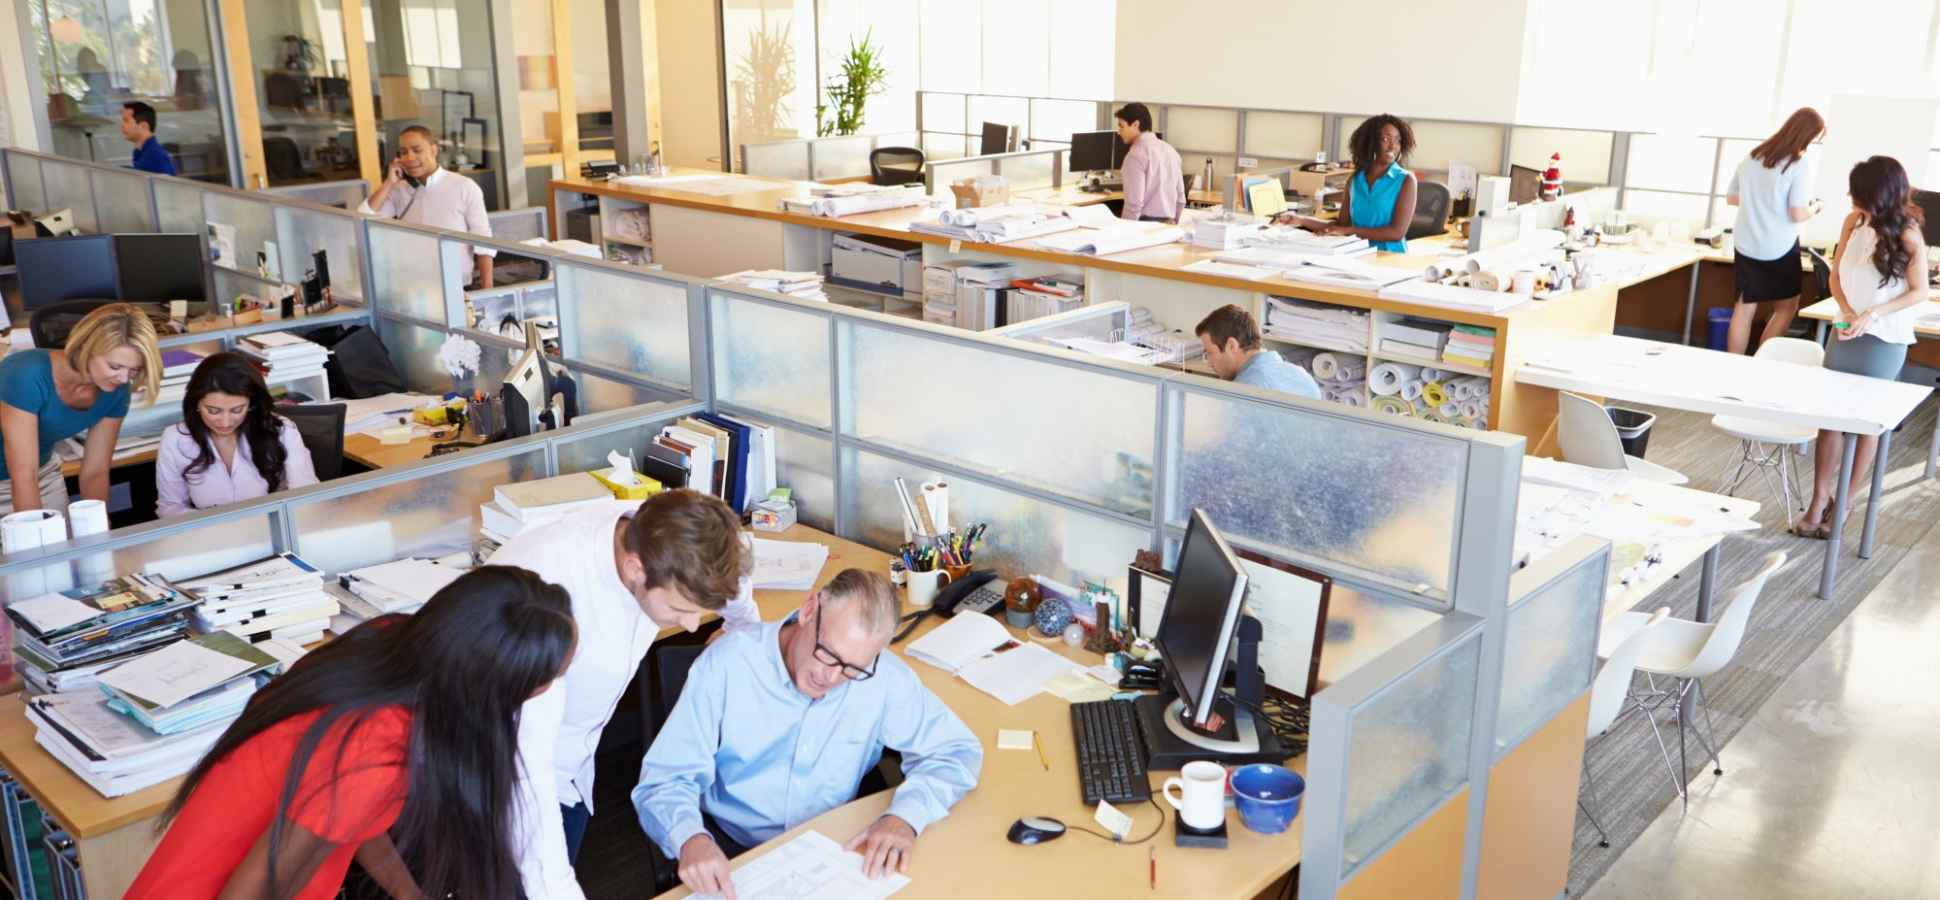 5 Changes Managers Can Make to Improve Workplace Efficiency